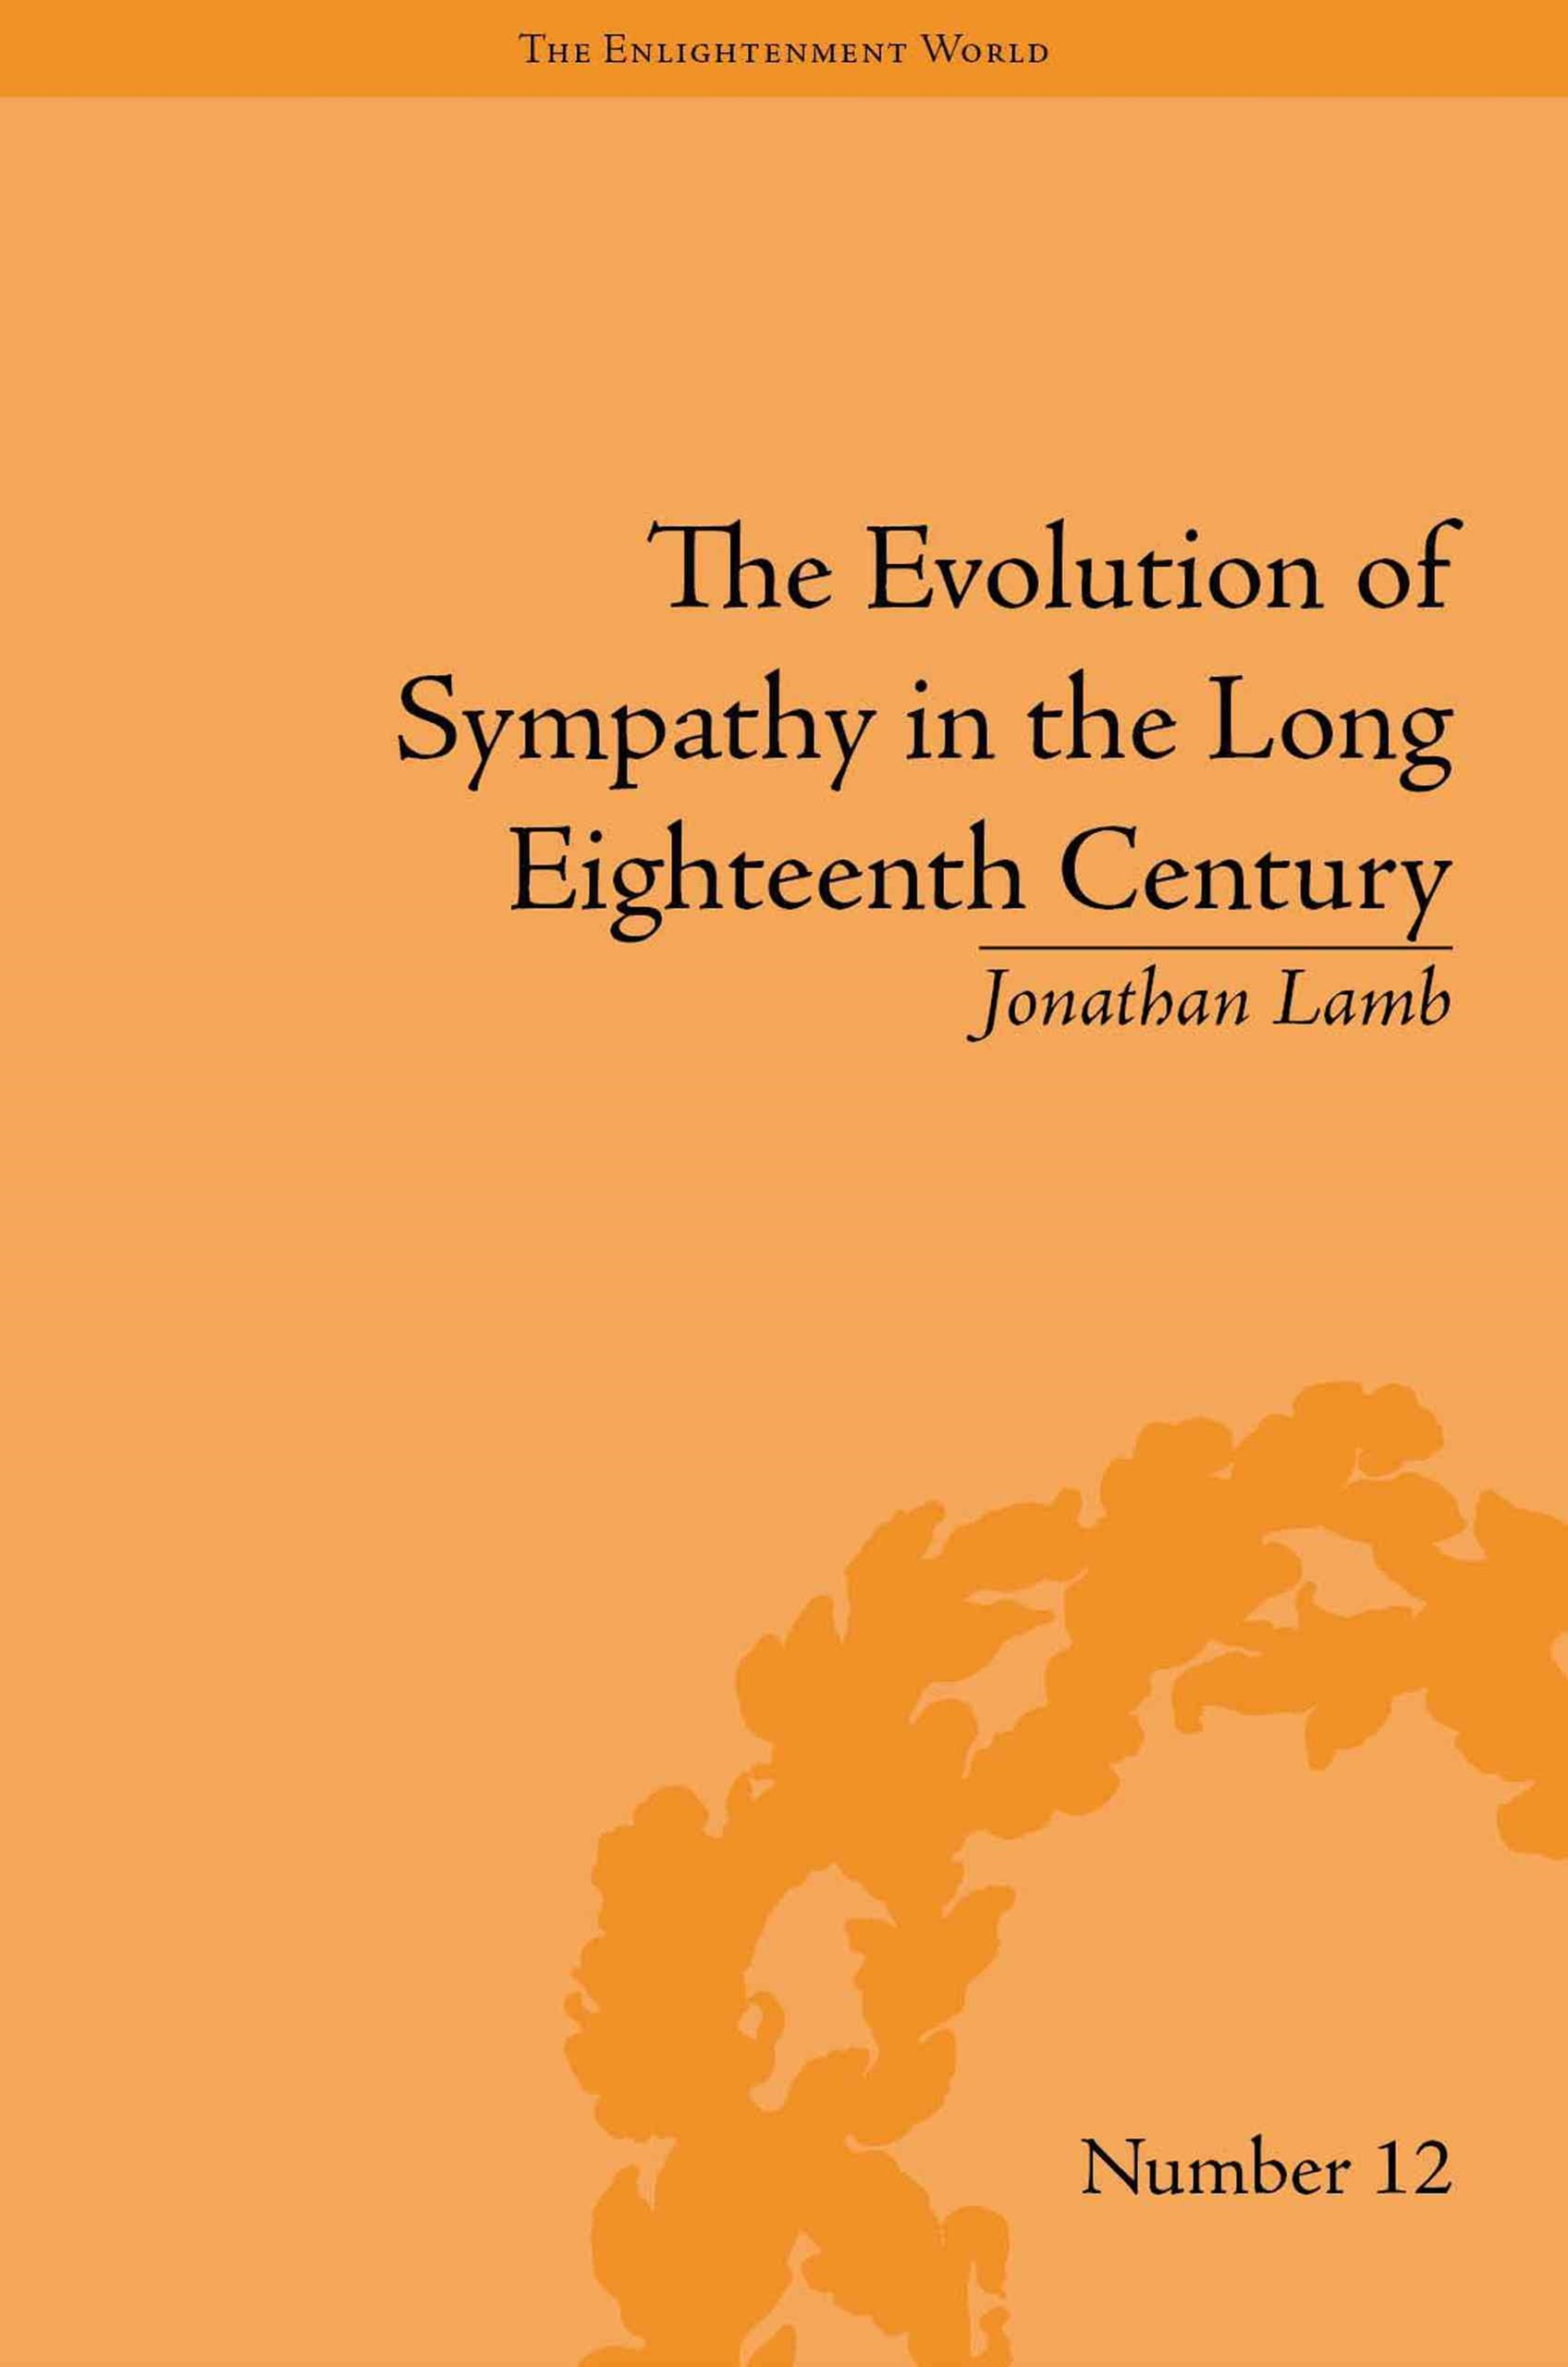 Evolution of Sympathy in the Long Eighteenth Century